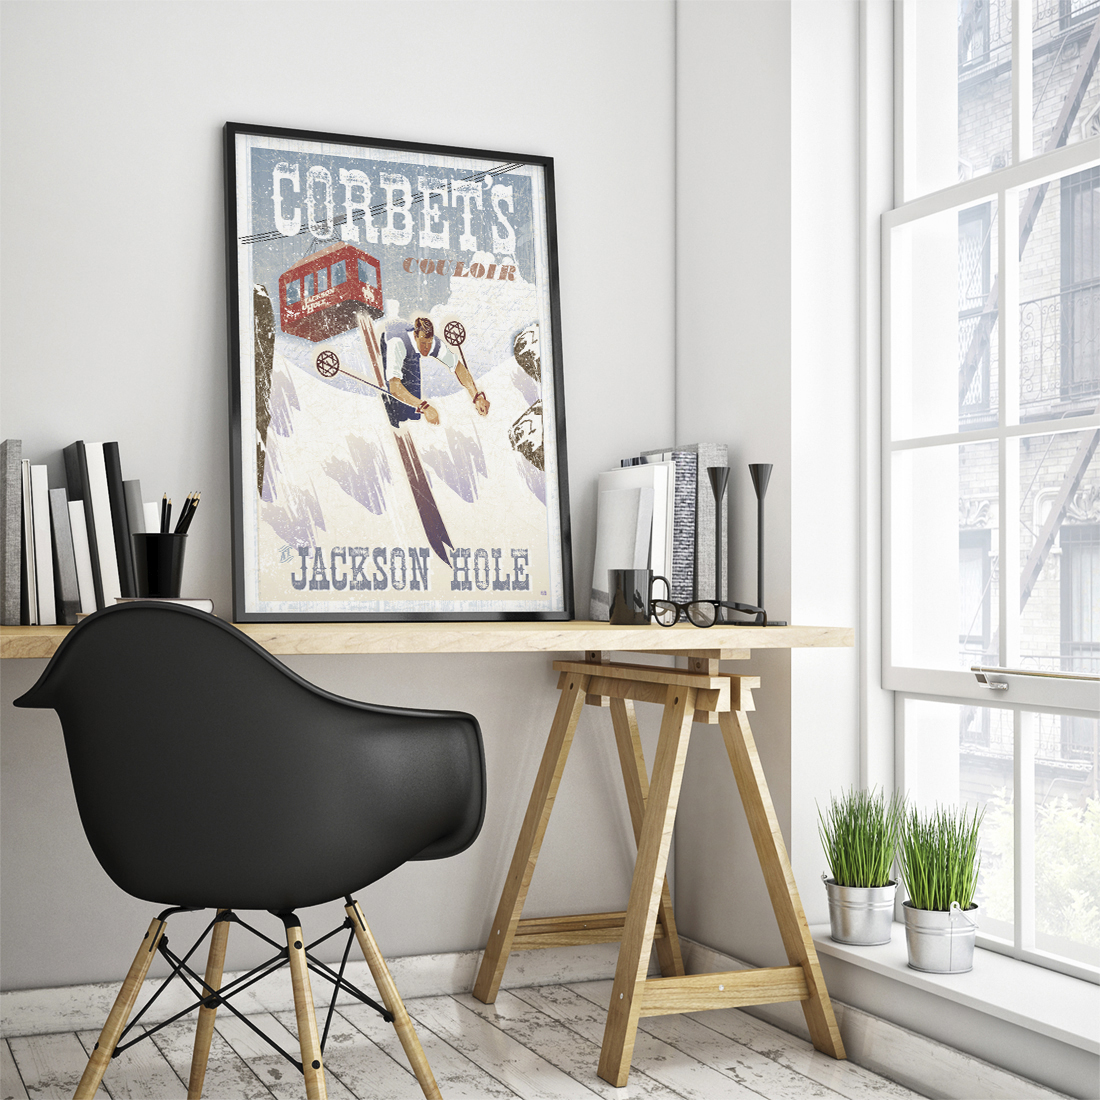 Great for home or office!